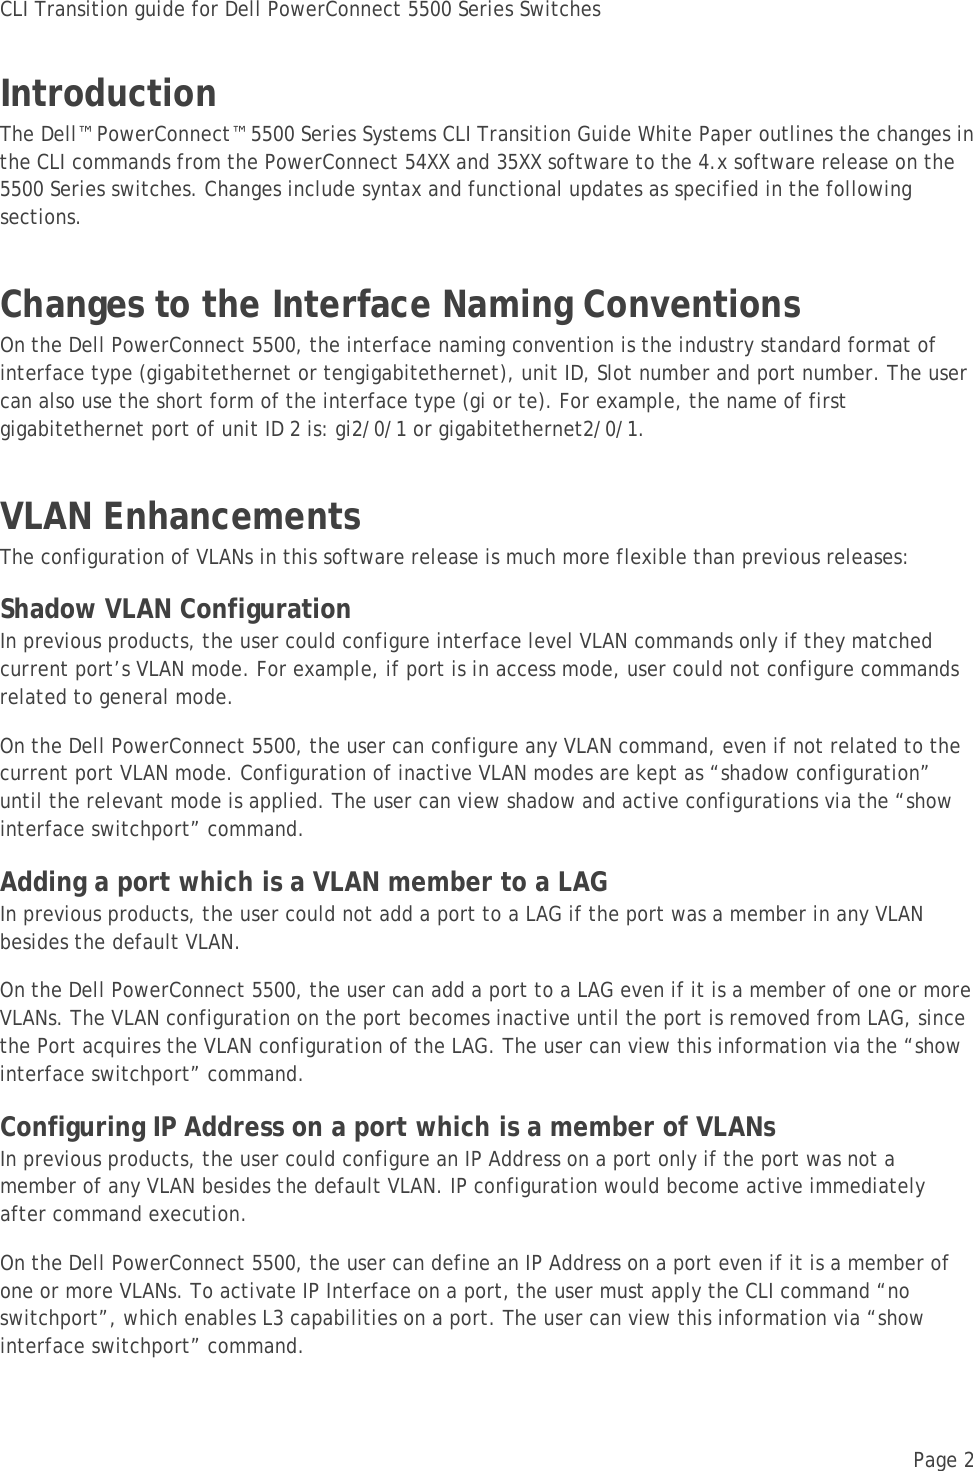 Dell Powerconnect 5548P Technical White Paper CLI Transition